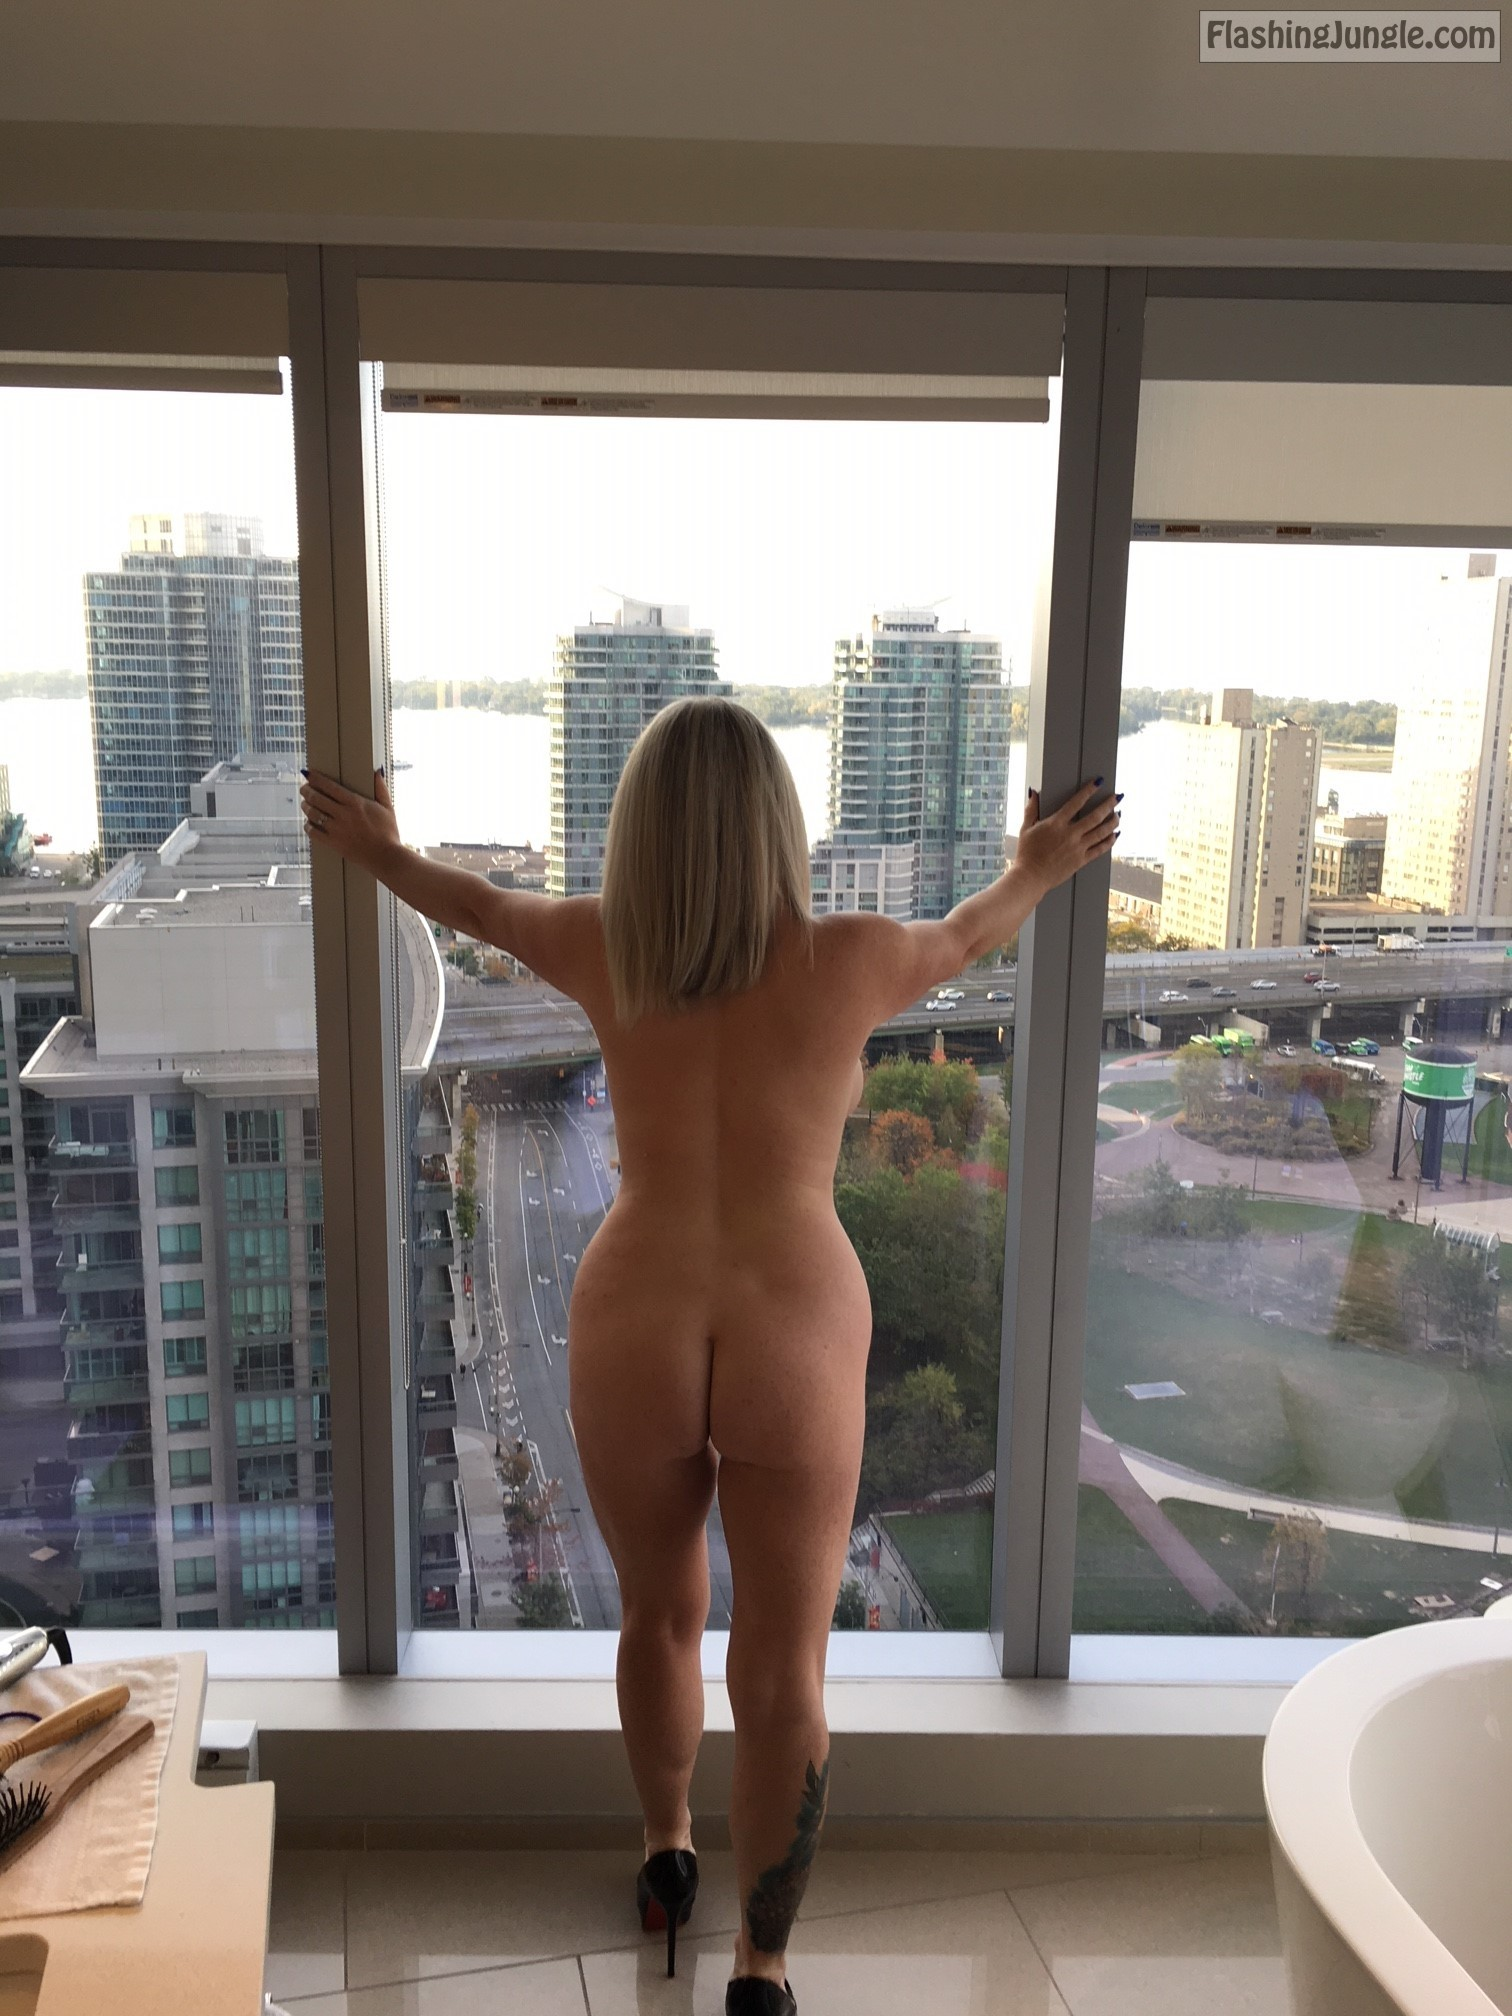 wife window Amateur nude of in front